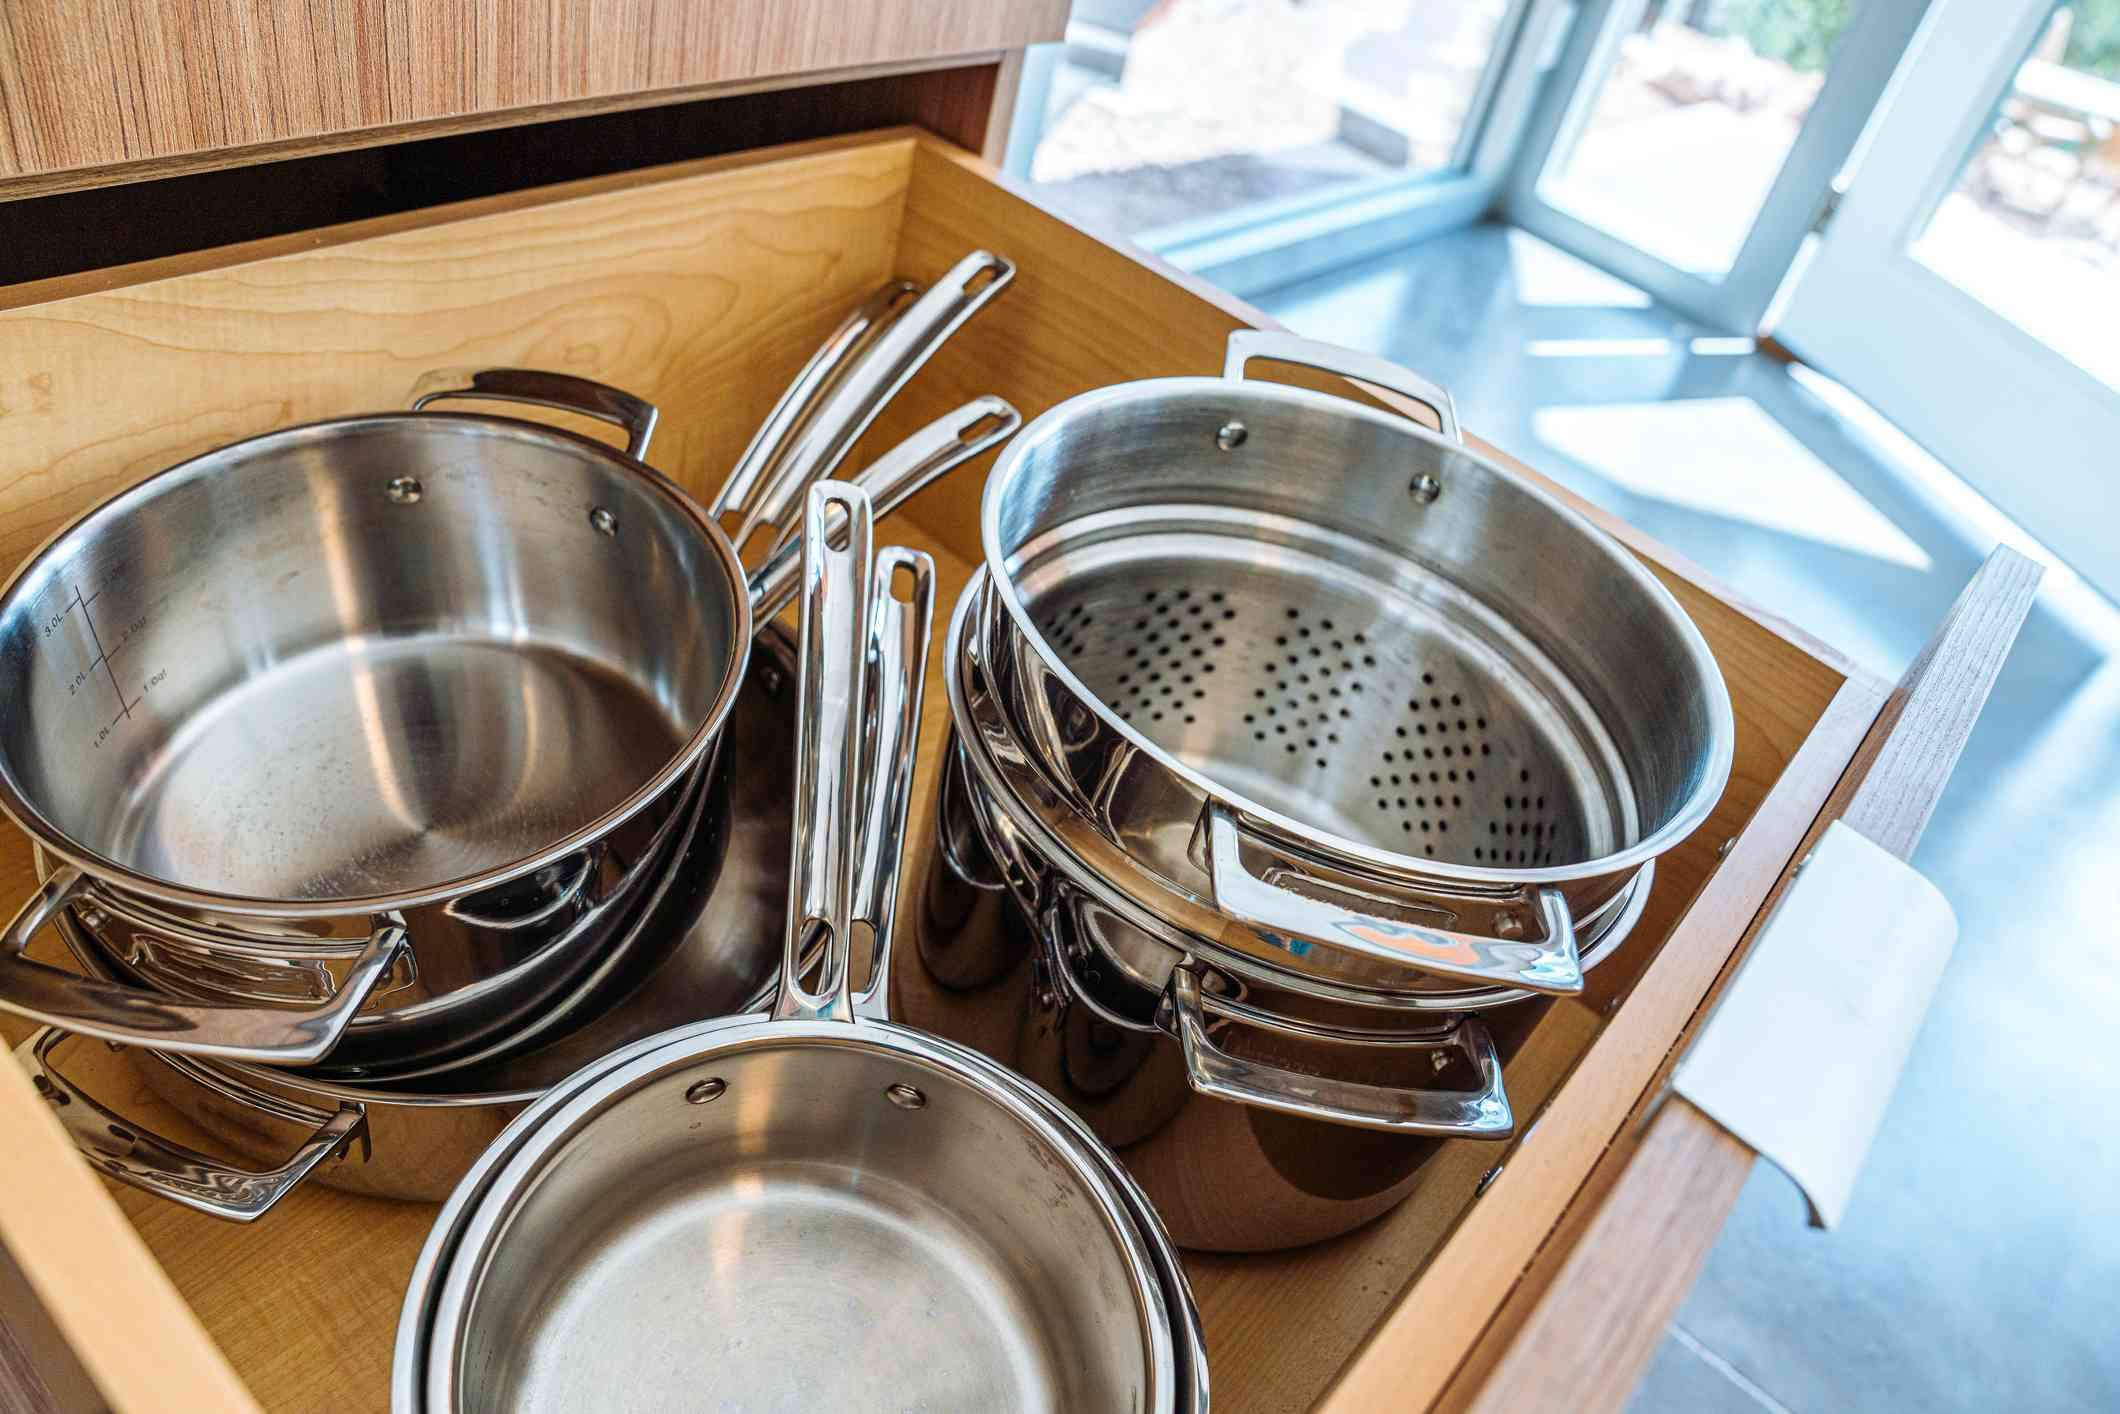 how to clean a burnt pot - clean pots organized in kitchen drawer